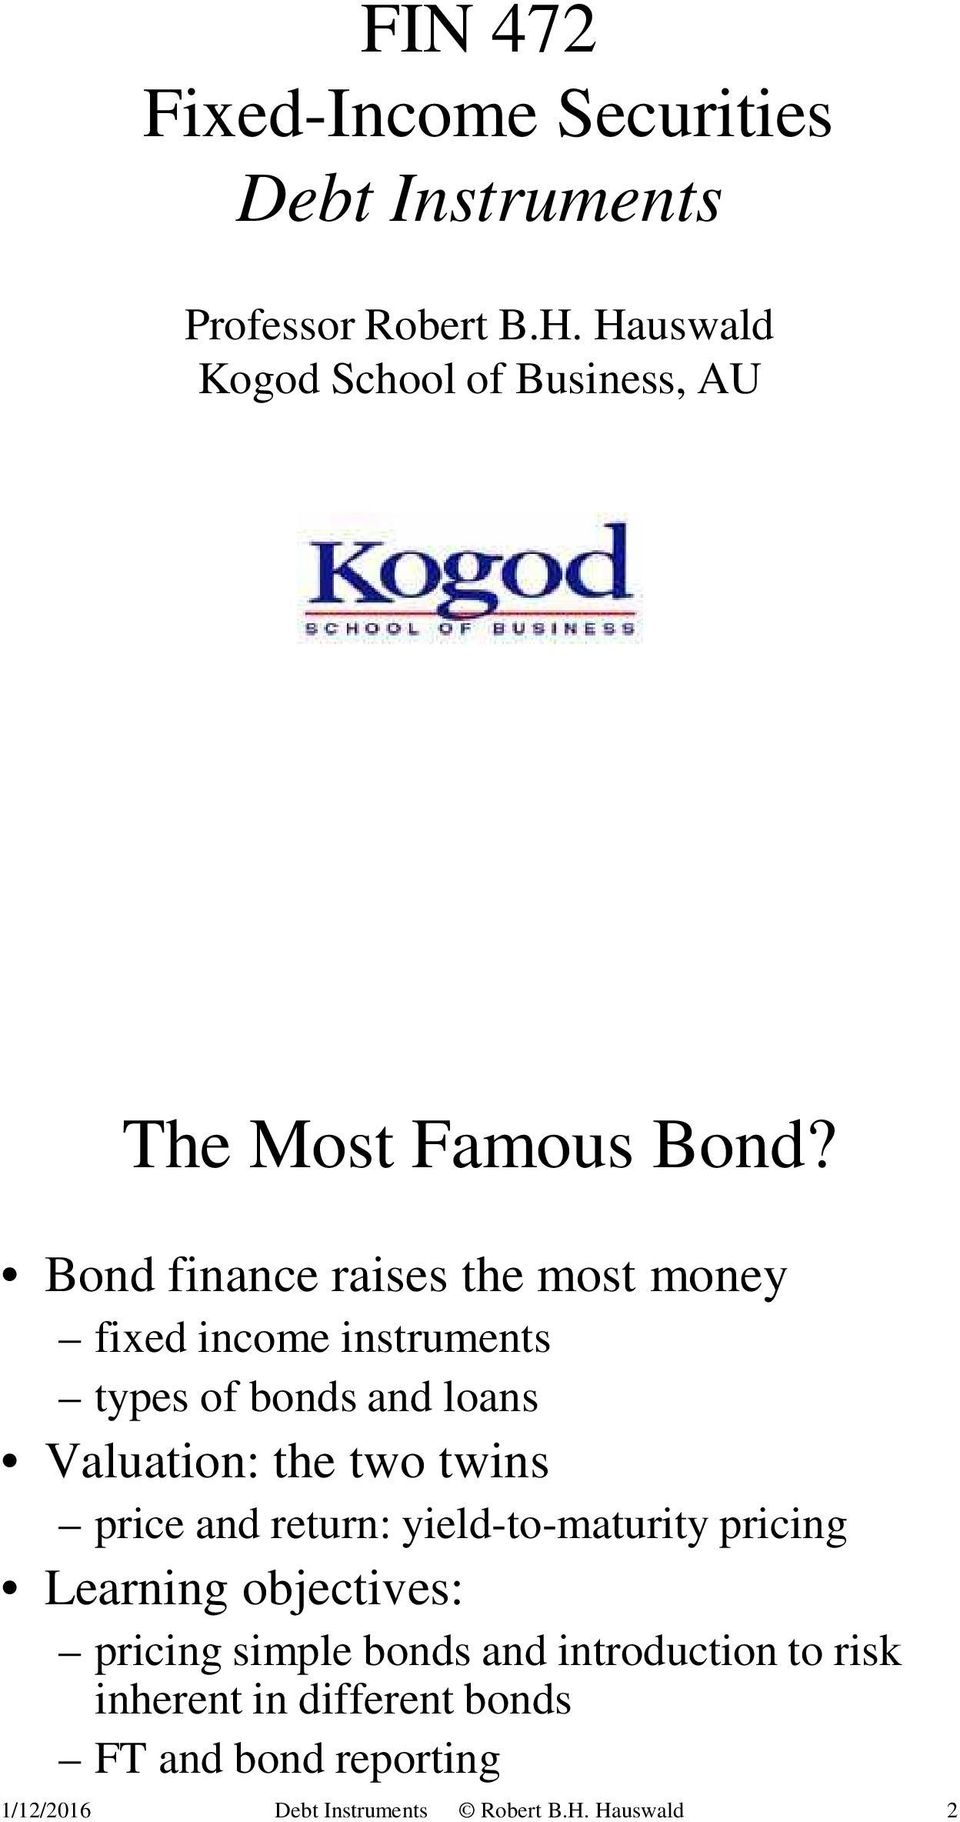 Bond finance raises the most money fixed income instruments types of bonds and loans Valuation: the two twins